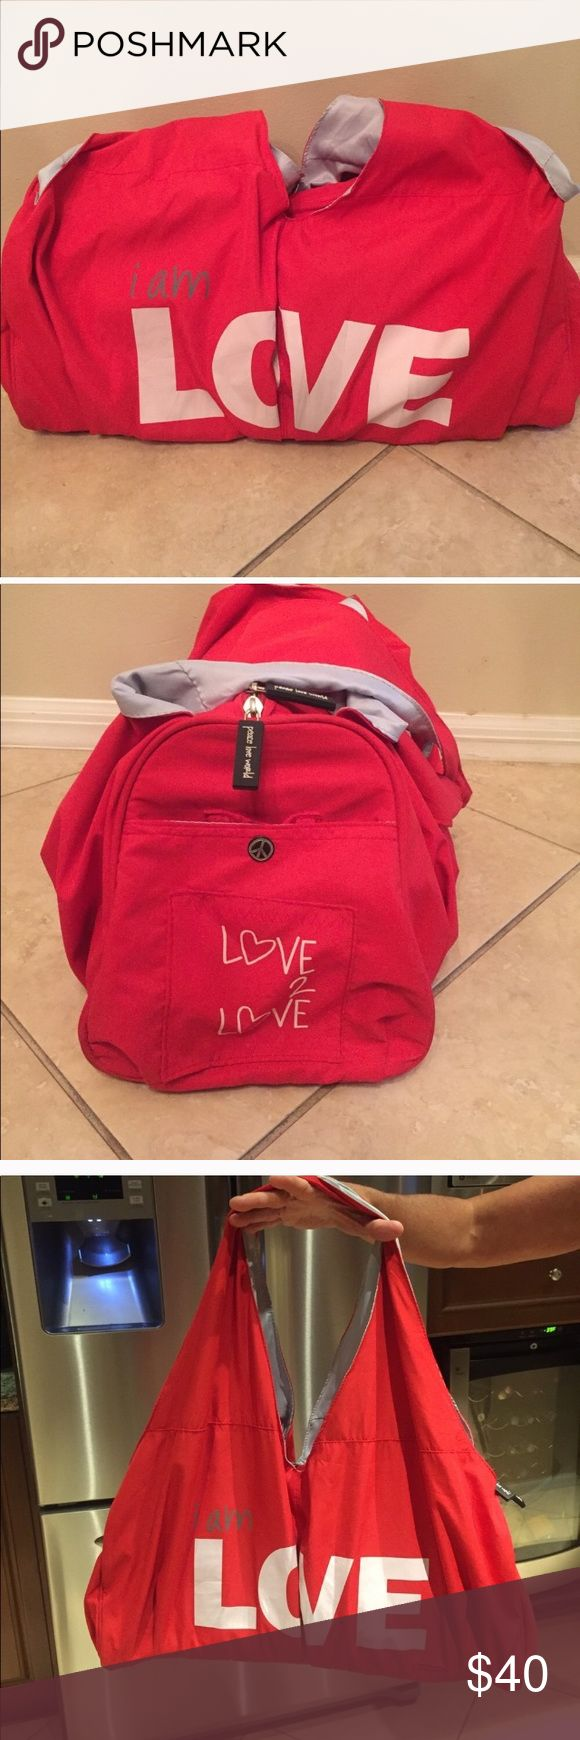 """Peace Love World duffle bag Red nylon duffle bag. Peace, Love , World... """"I am Love"""".  2 long straps.  7 pockets total.  18 inches by 8 inches.  Great for travel!! Peace Love World Bags Travel Bags"""